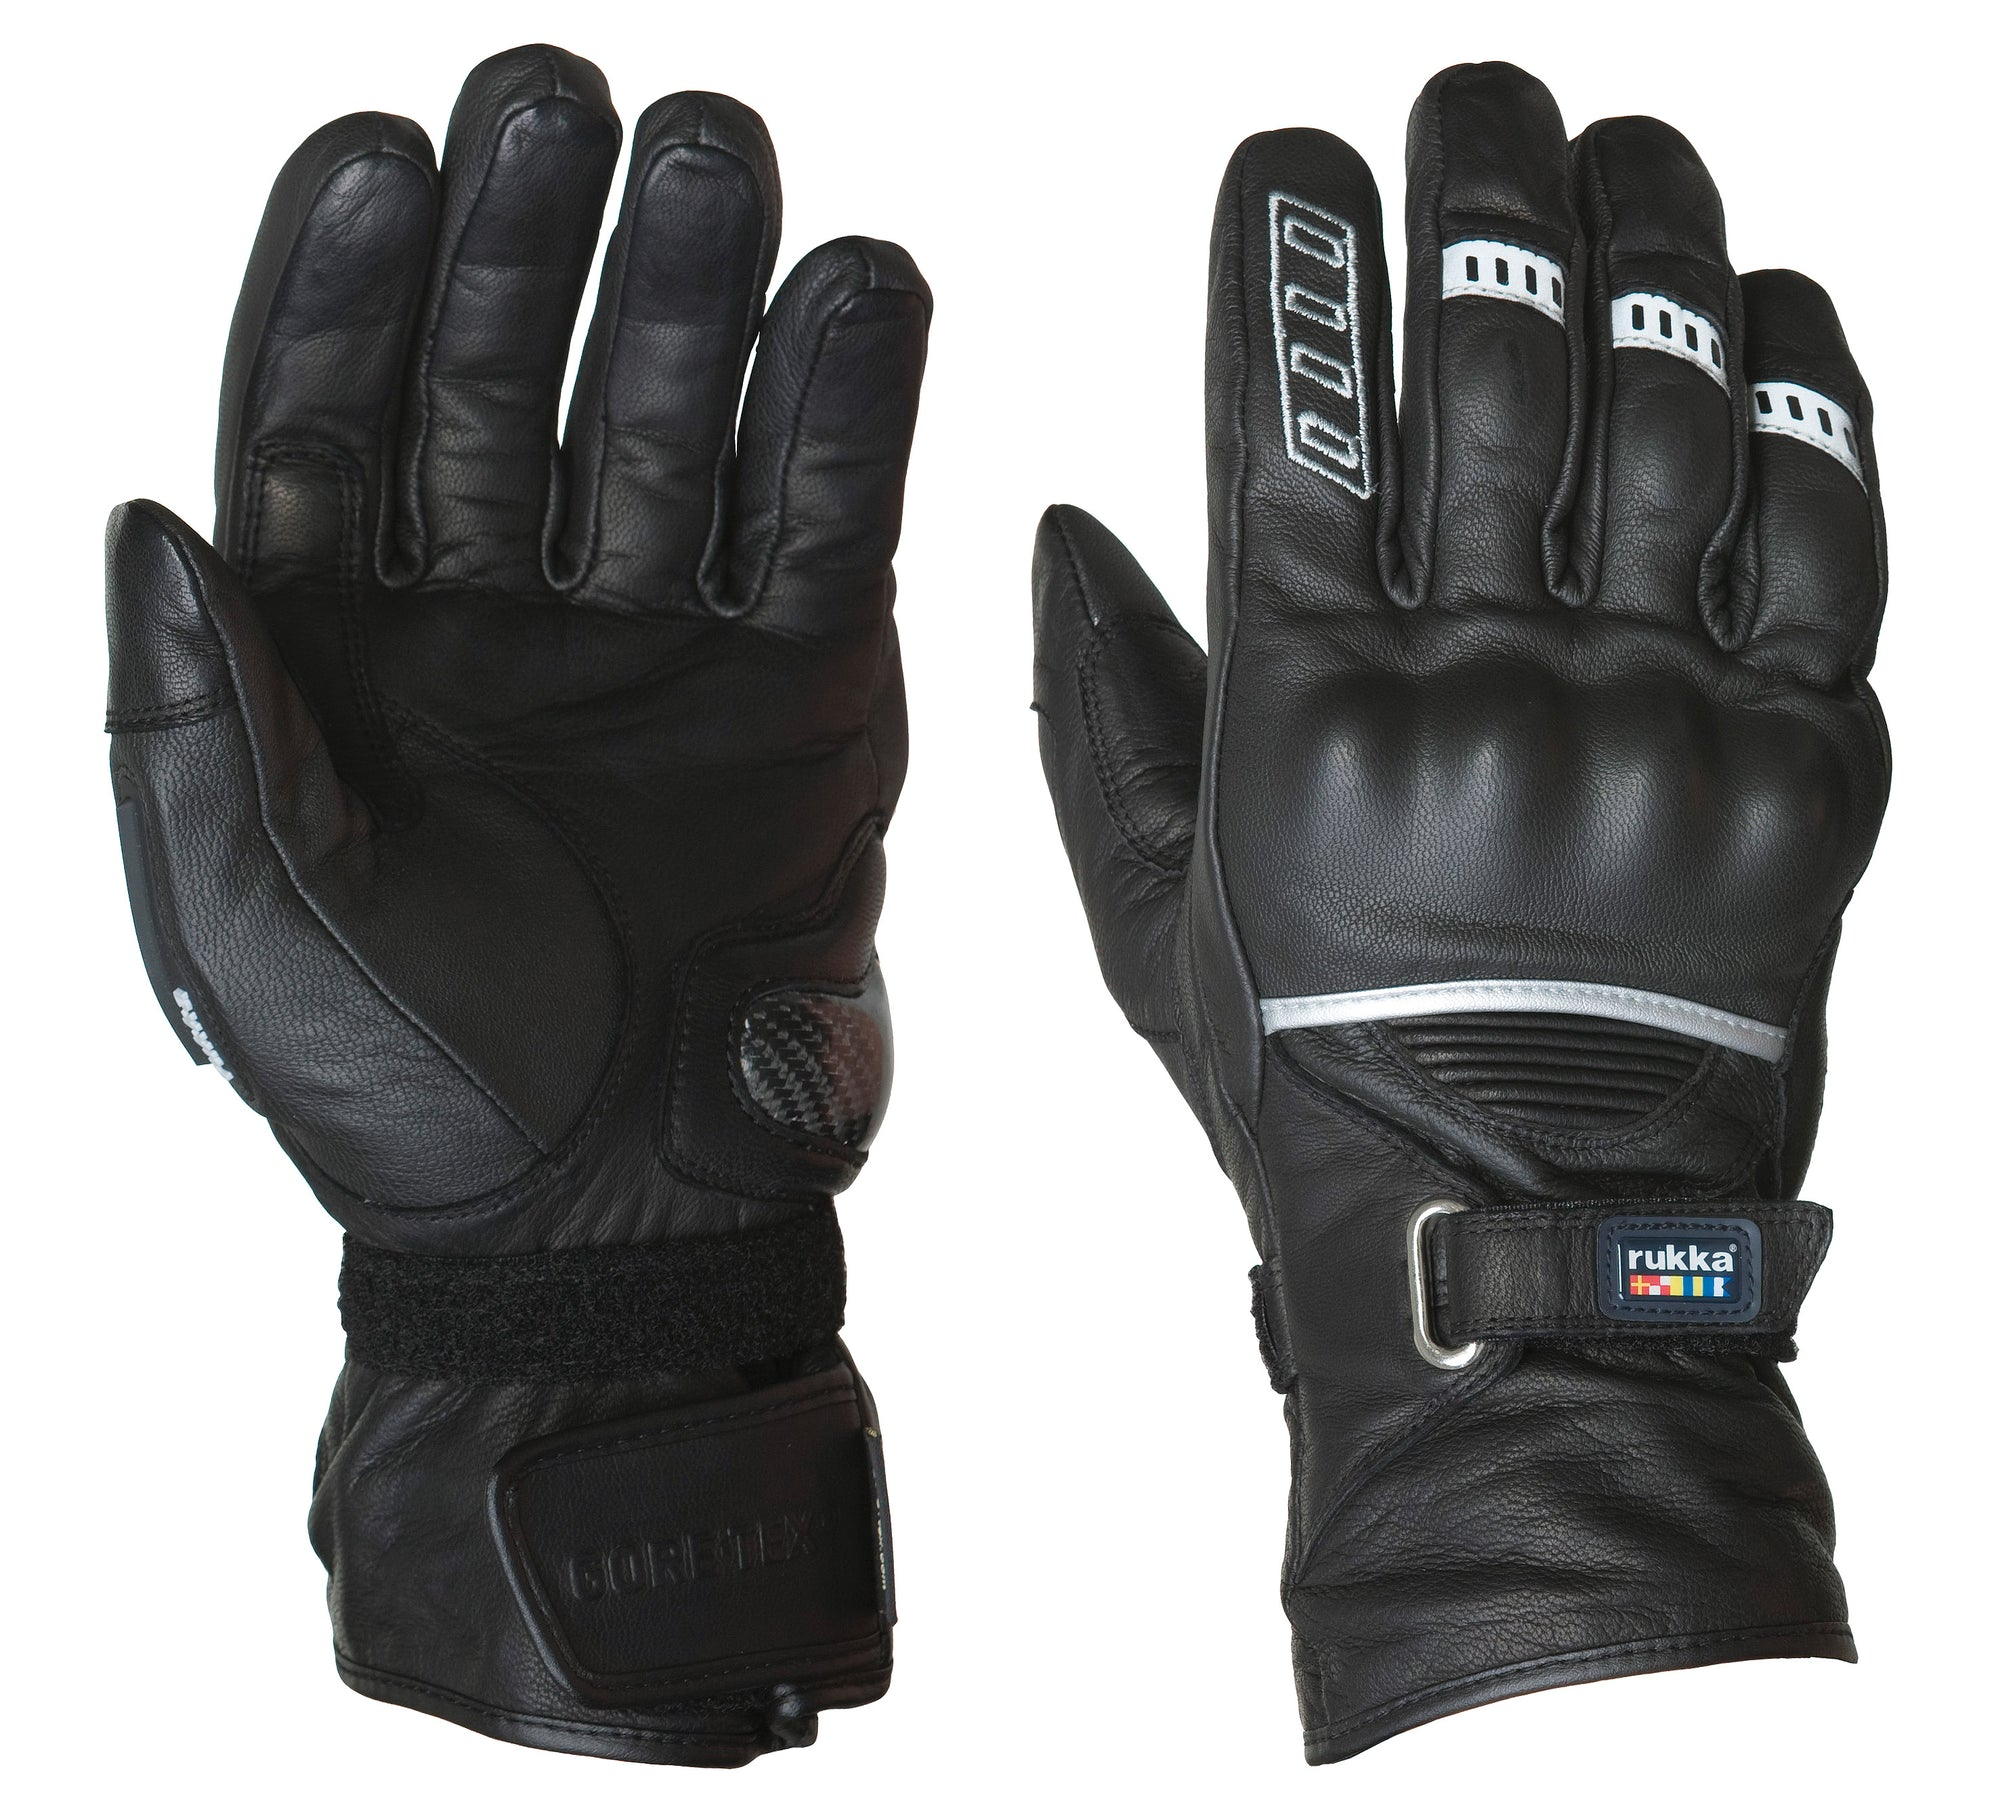 Rukka Apollo Gloves, Gloves, Rukka - Averys Motorcycles